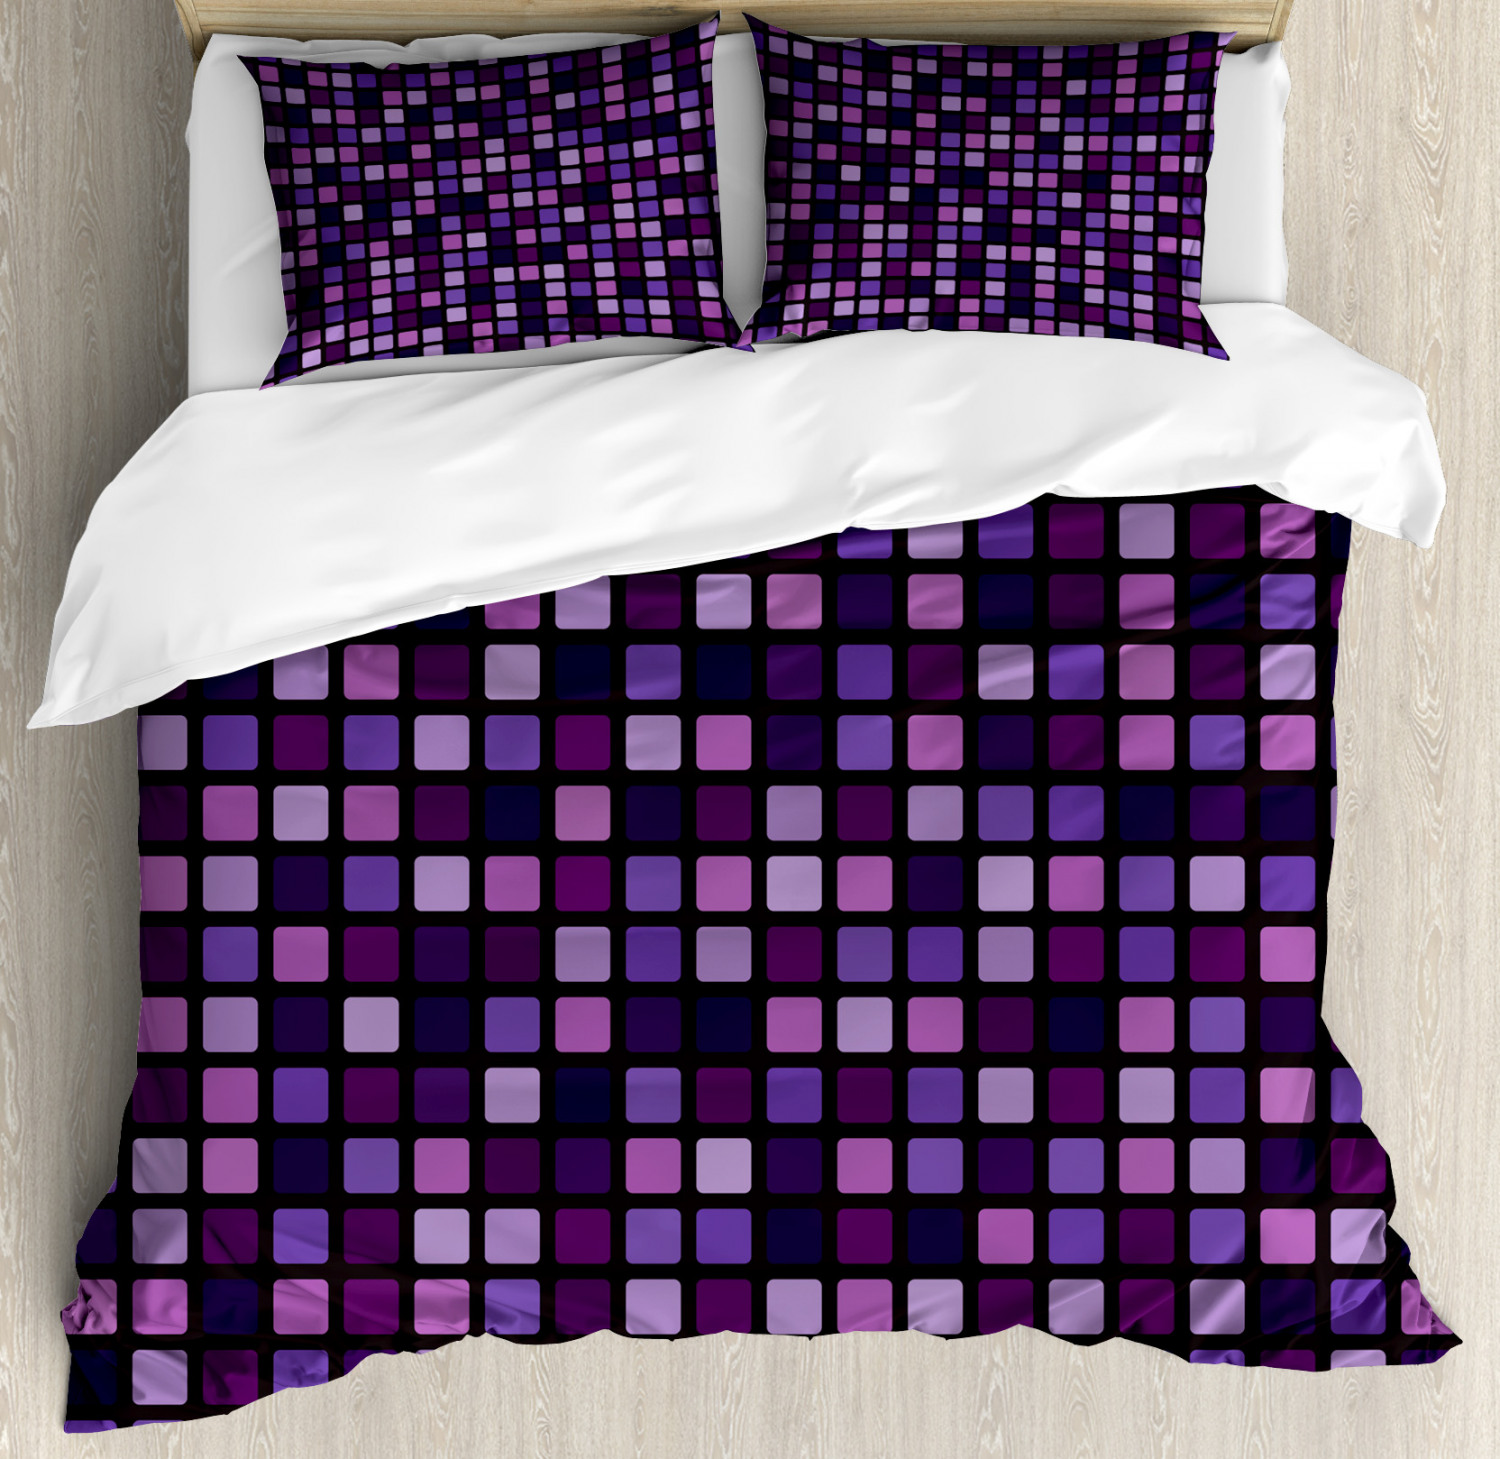 Grid Duvet Cover Set Queen Size Geometric Beveled Square Mosaic Tiles Pattern With Vibrant Contrast Tones Of Purple Decorative 3 Piece Bedding Set With 2 Pillow Shams Multicolor By Ambesonne Walmart Com